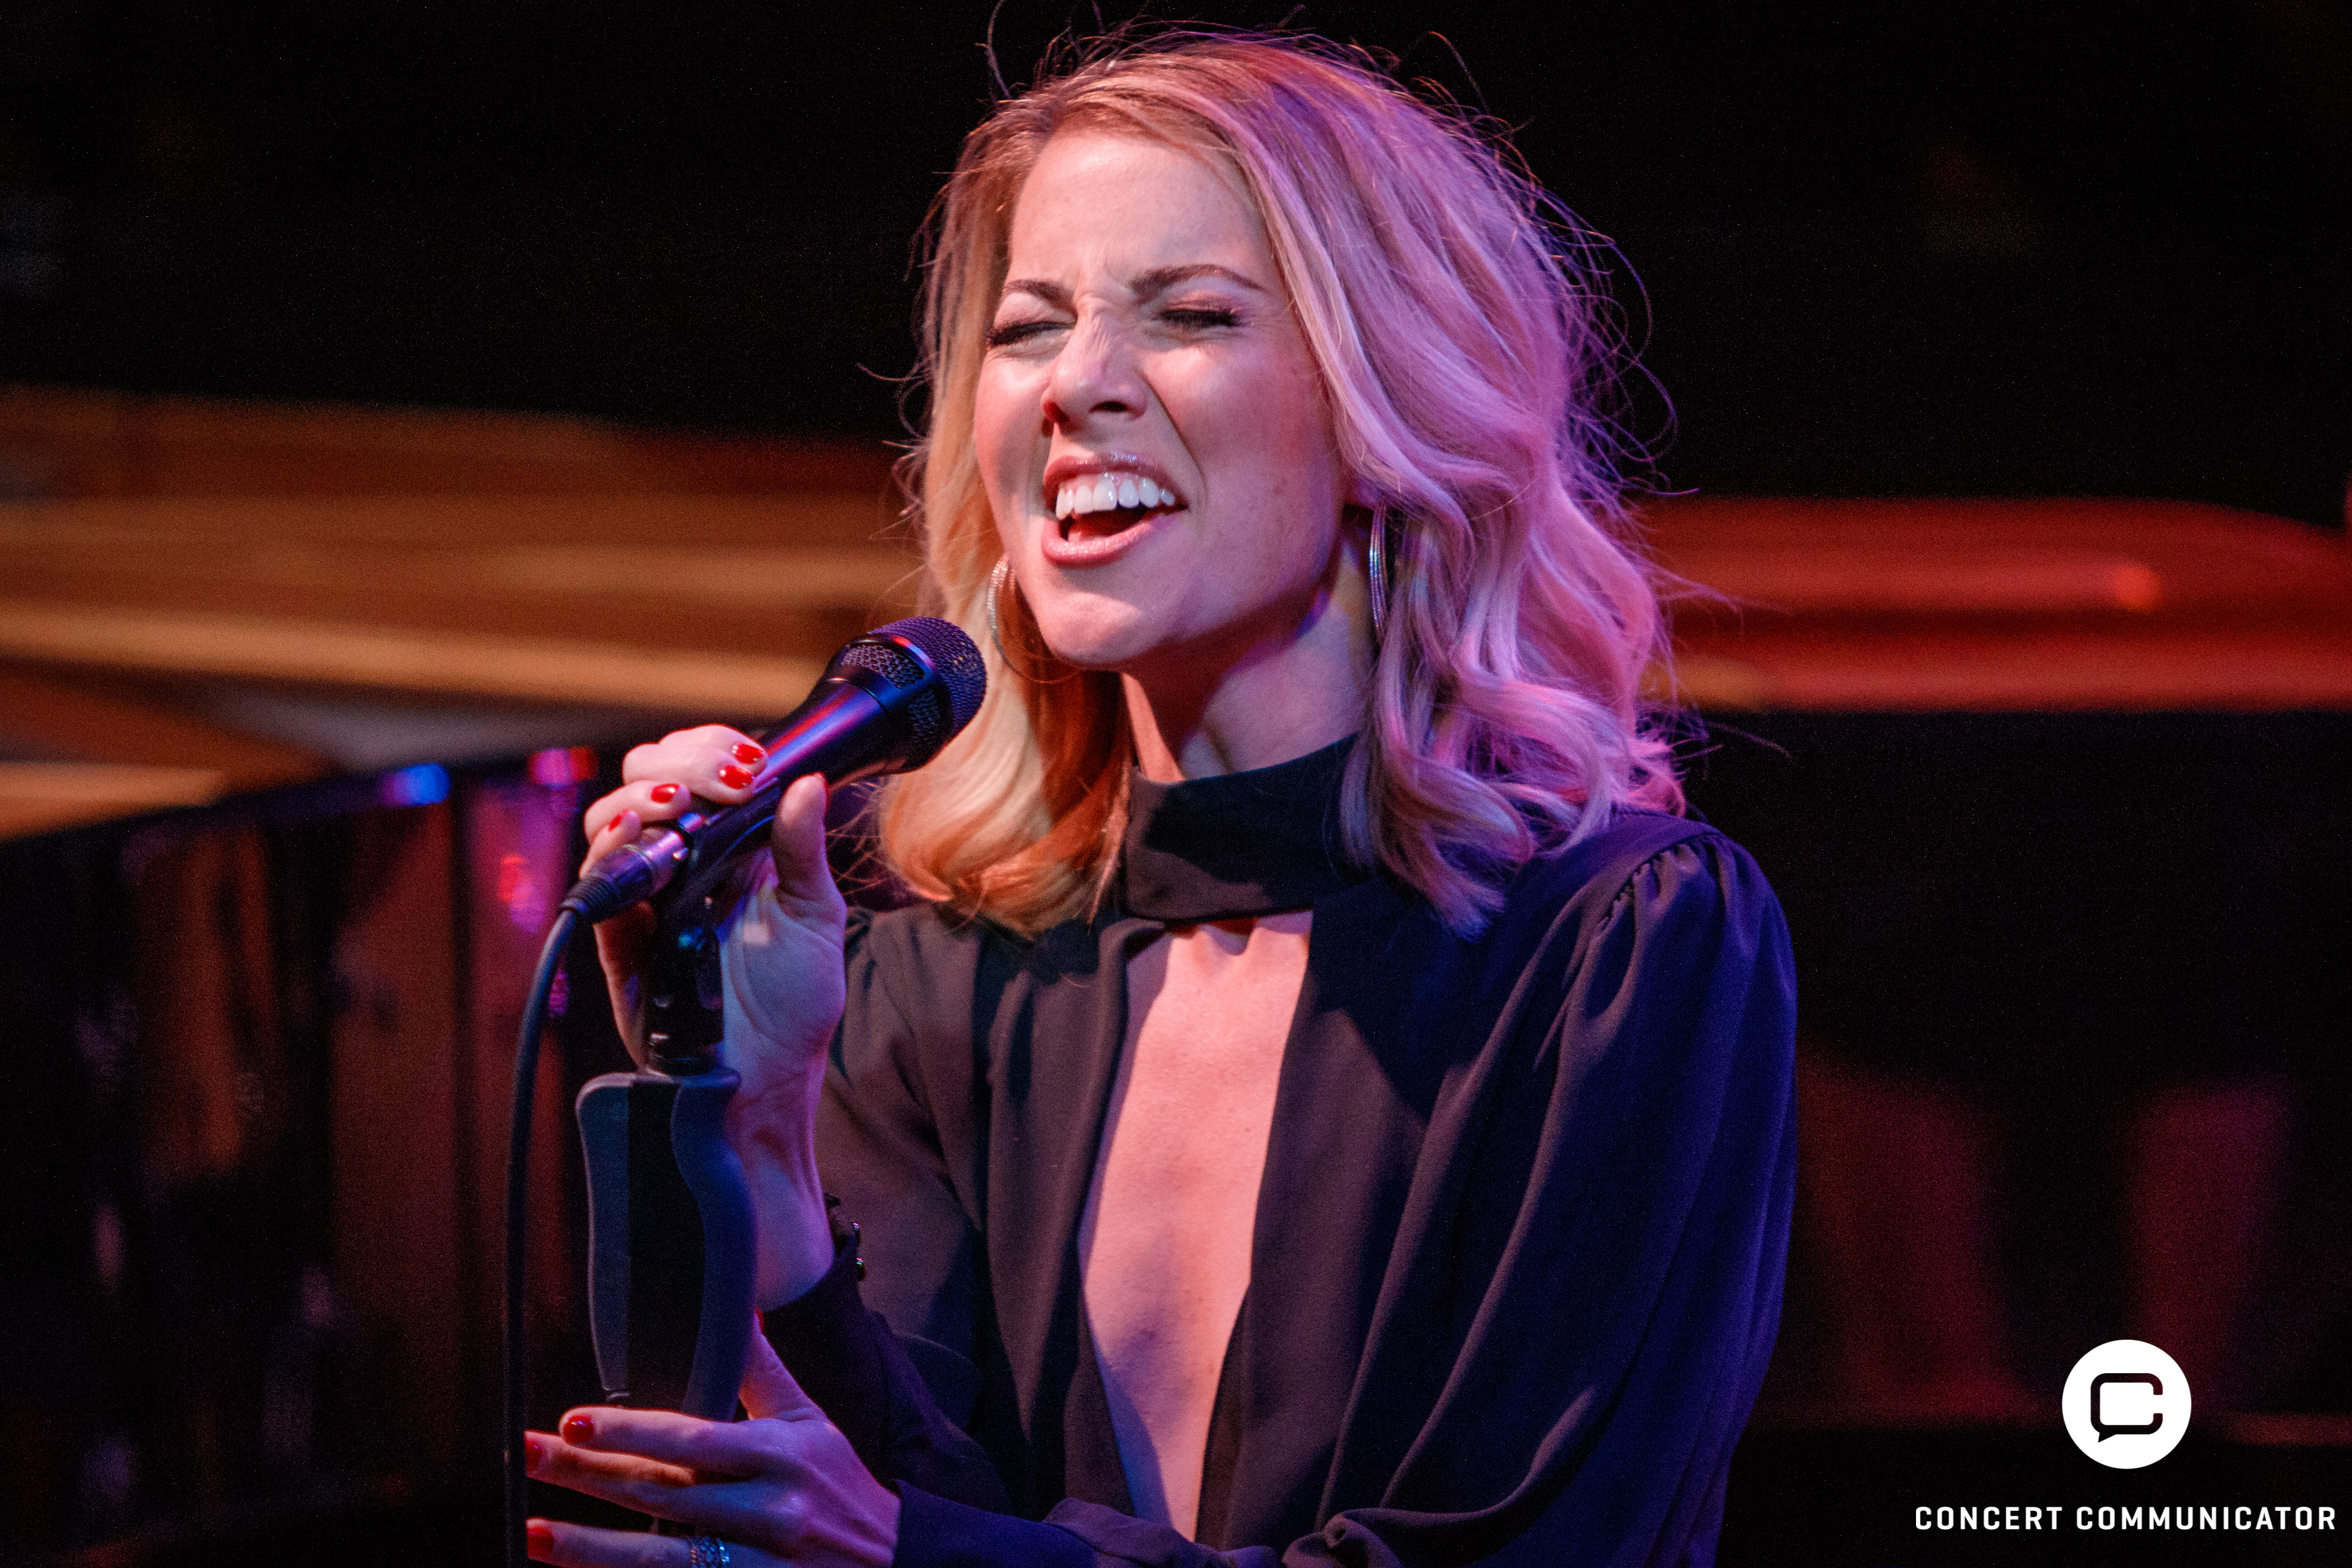 Morgan James at the Dakota Jazz Club